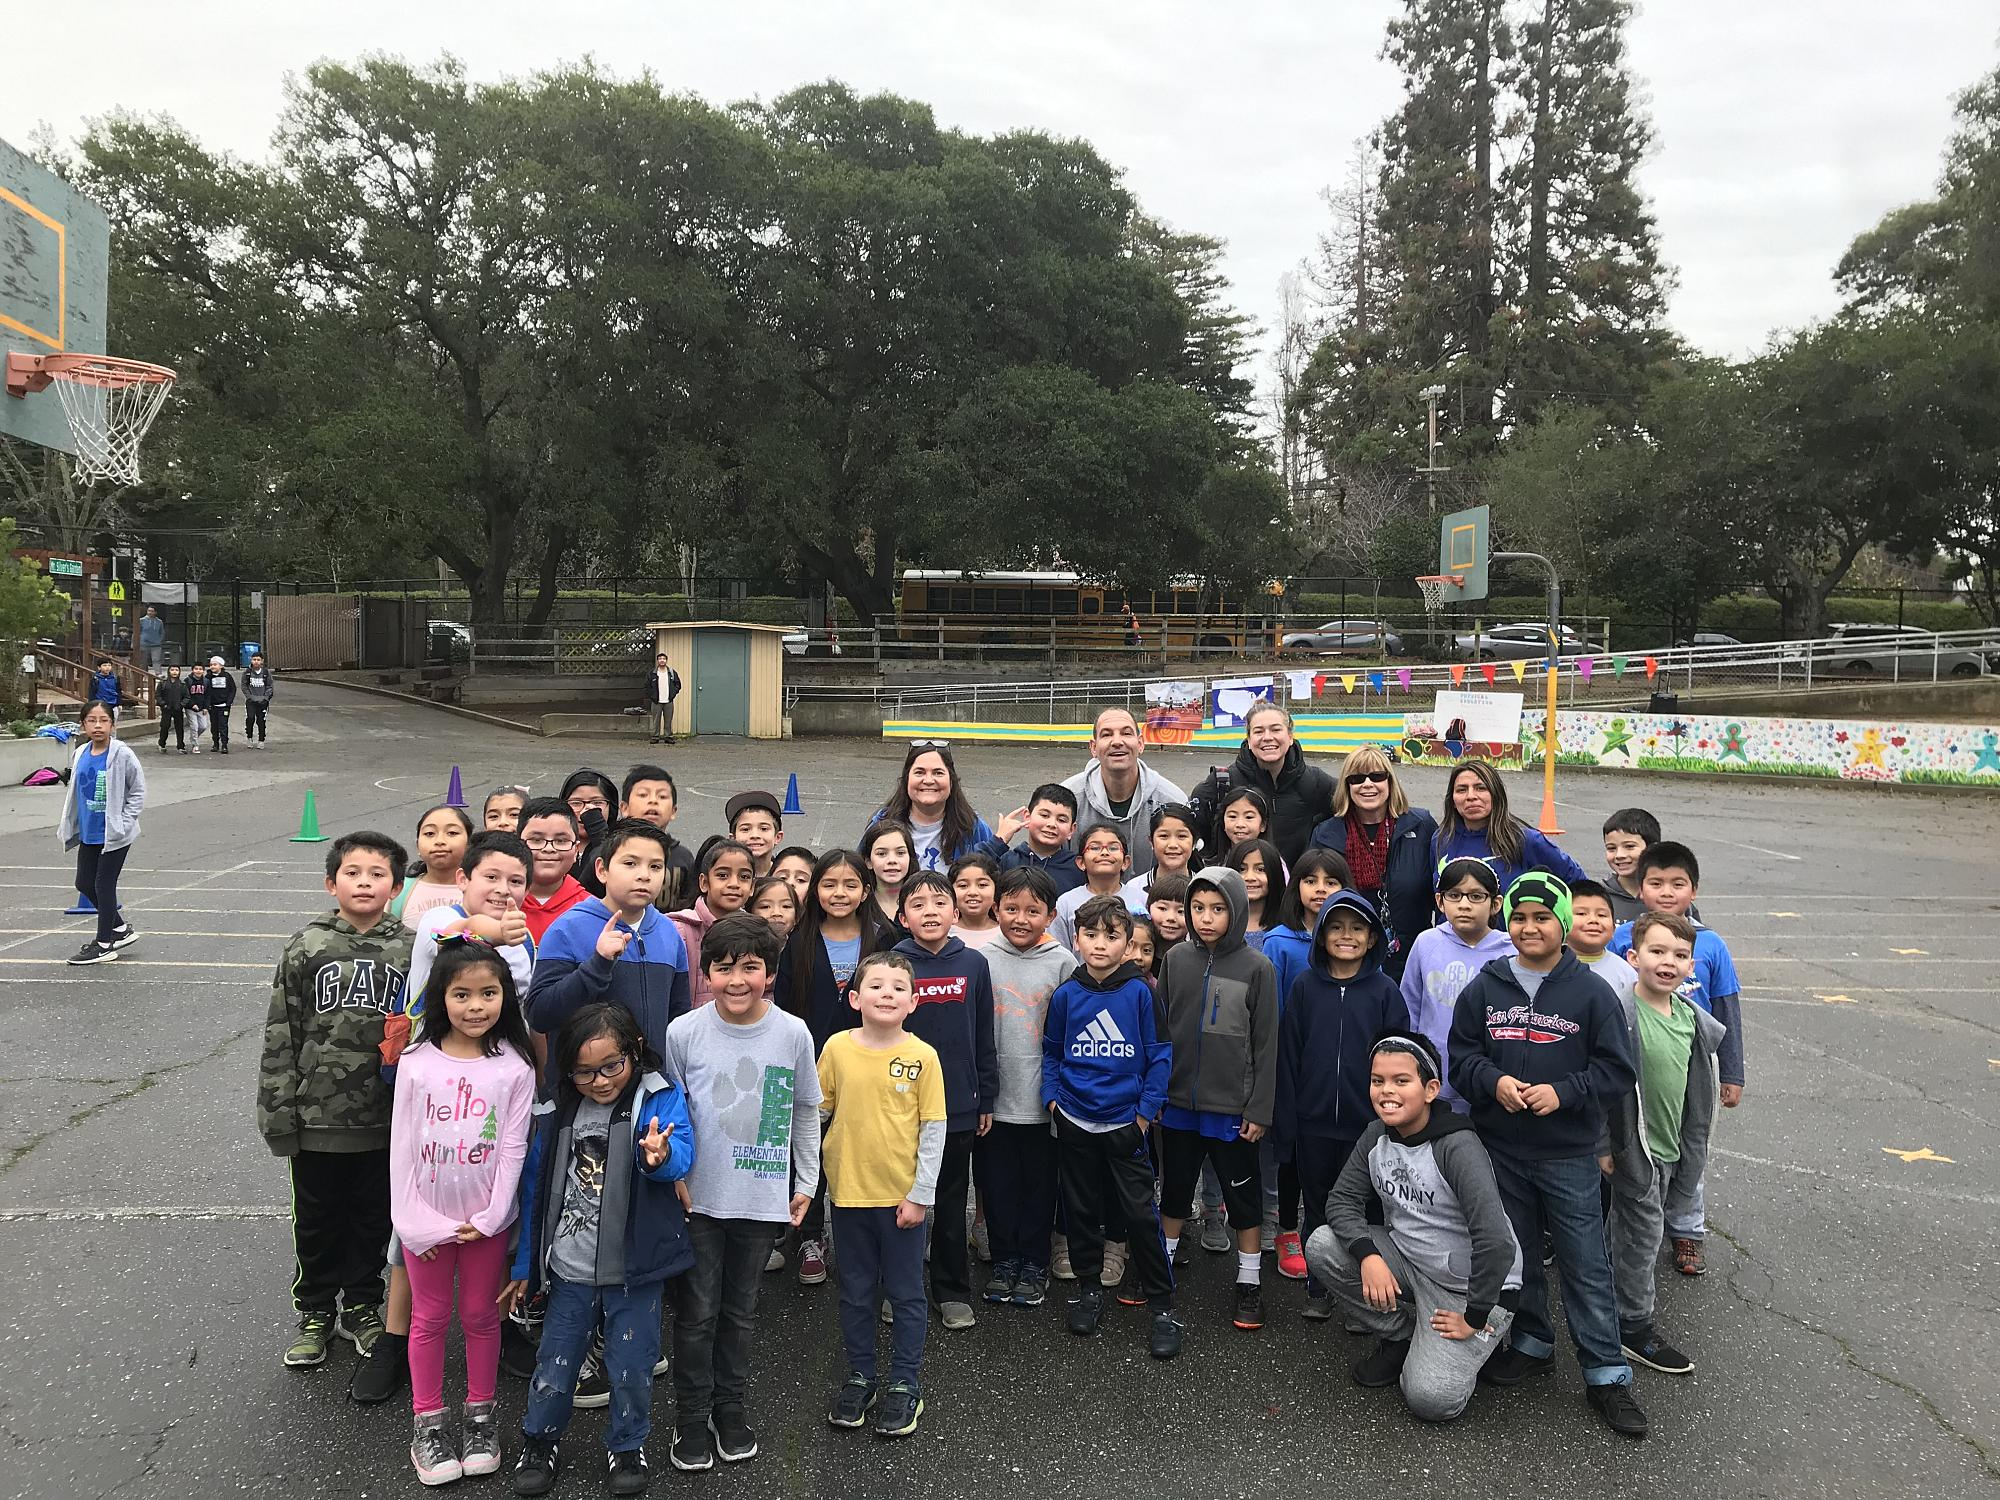 marathon kids running club!